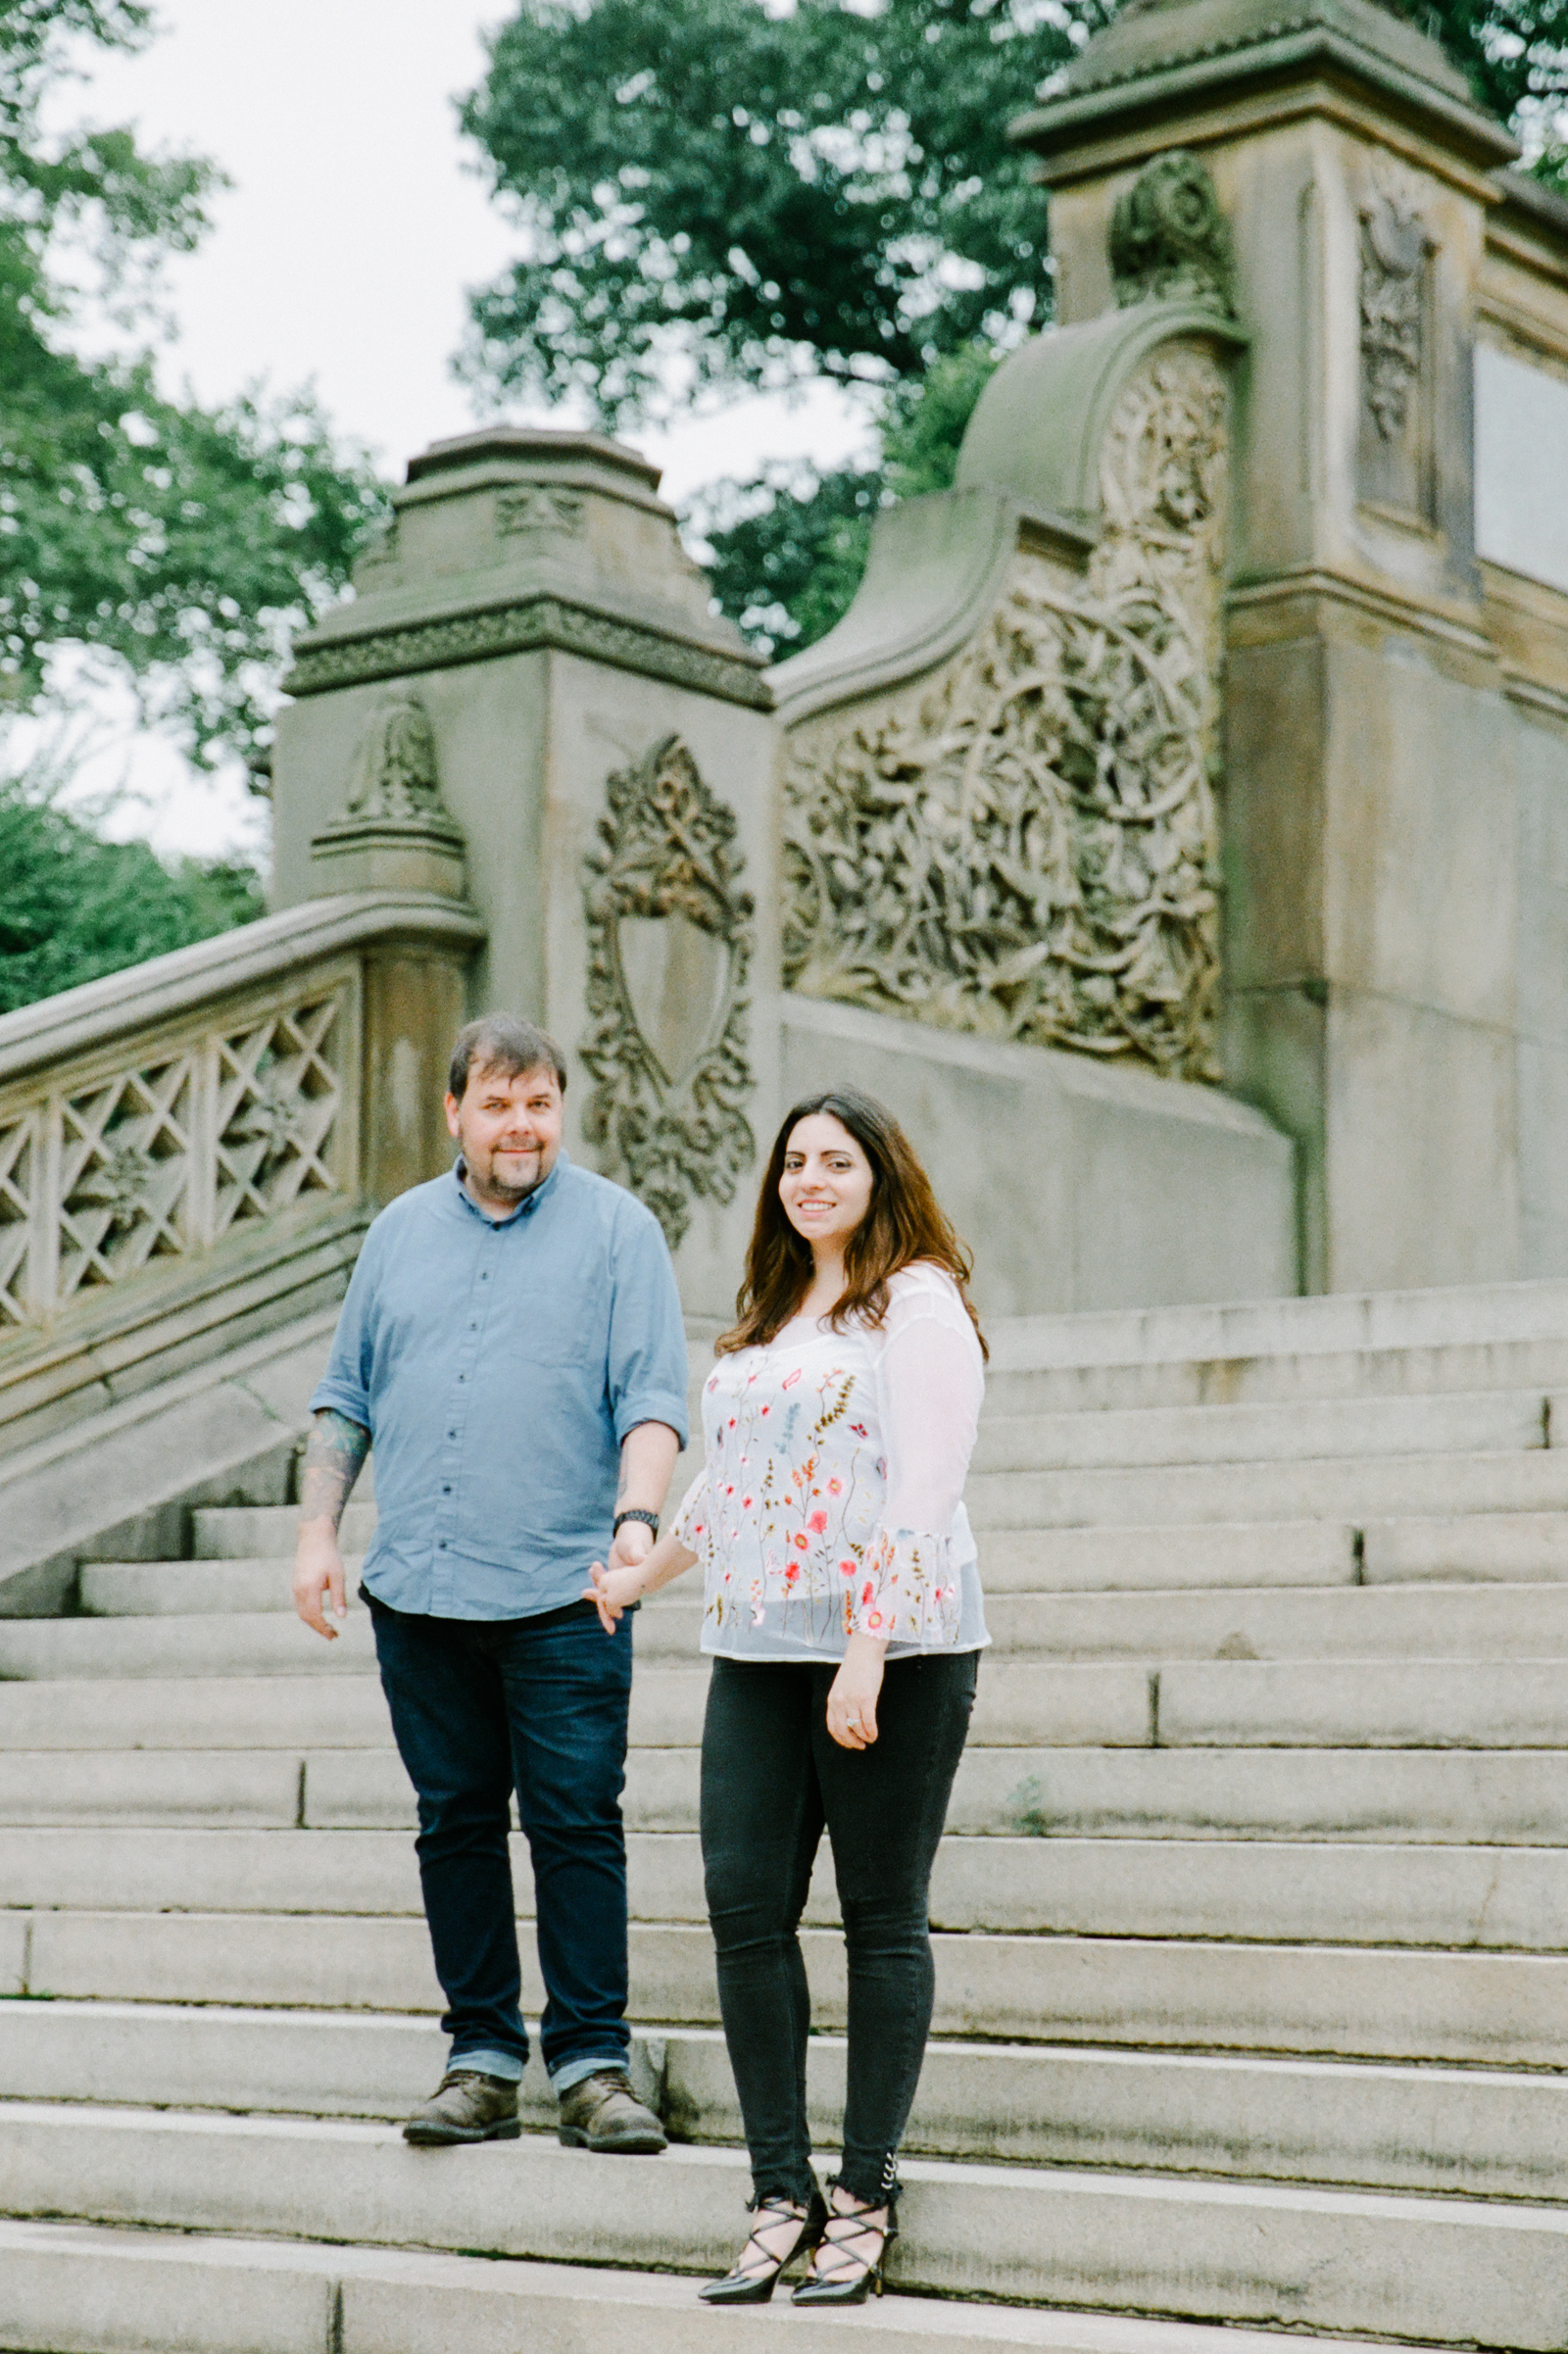 Central-Park-NYC-Engagement-Session-film-photography-42.jpg